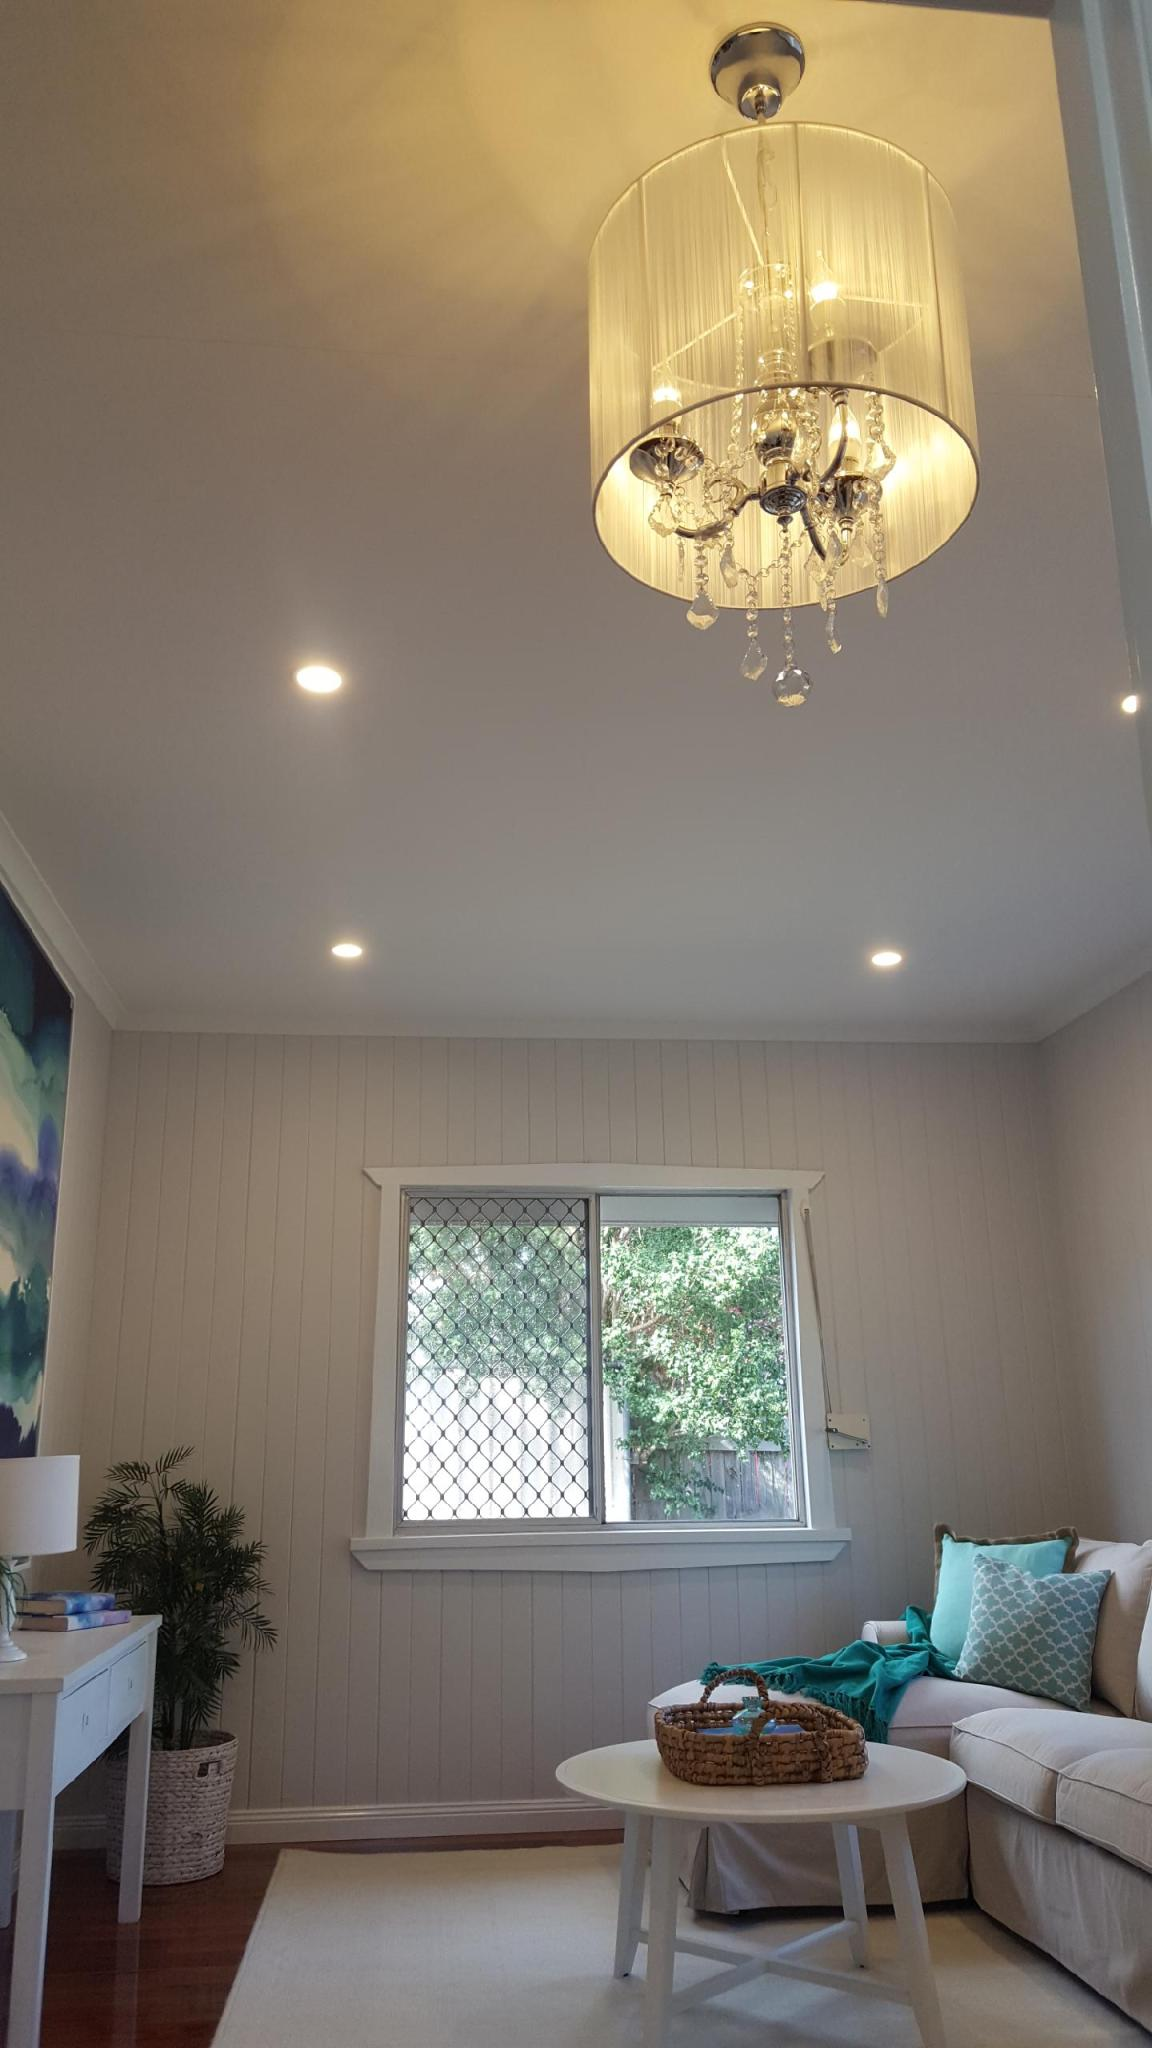 Levitt electrical interior lighting electrical repair maintenance interior lighting is a key part of interior design and can make a house truly feel like a home the qualified master electricians at levitt electrical can aloadofball Images